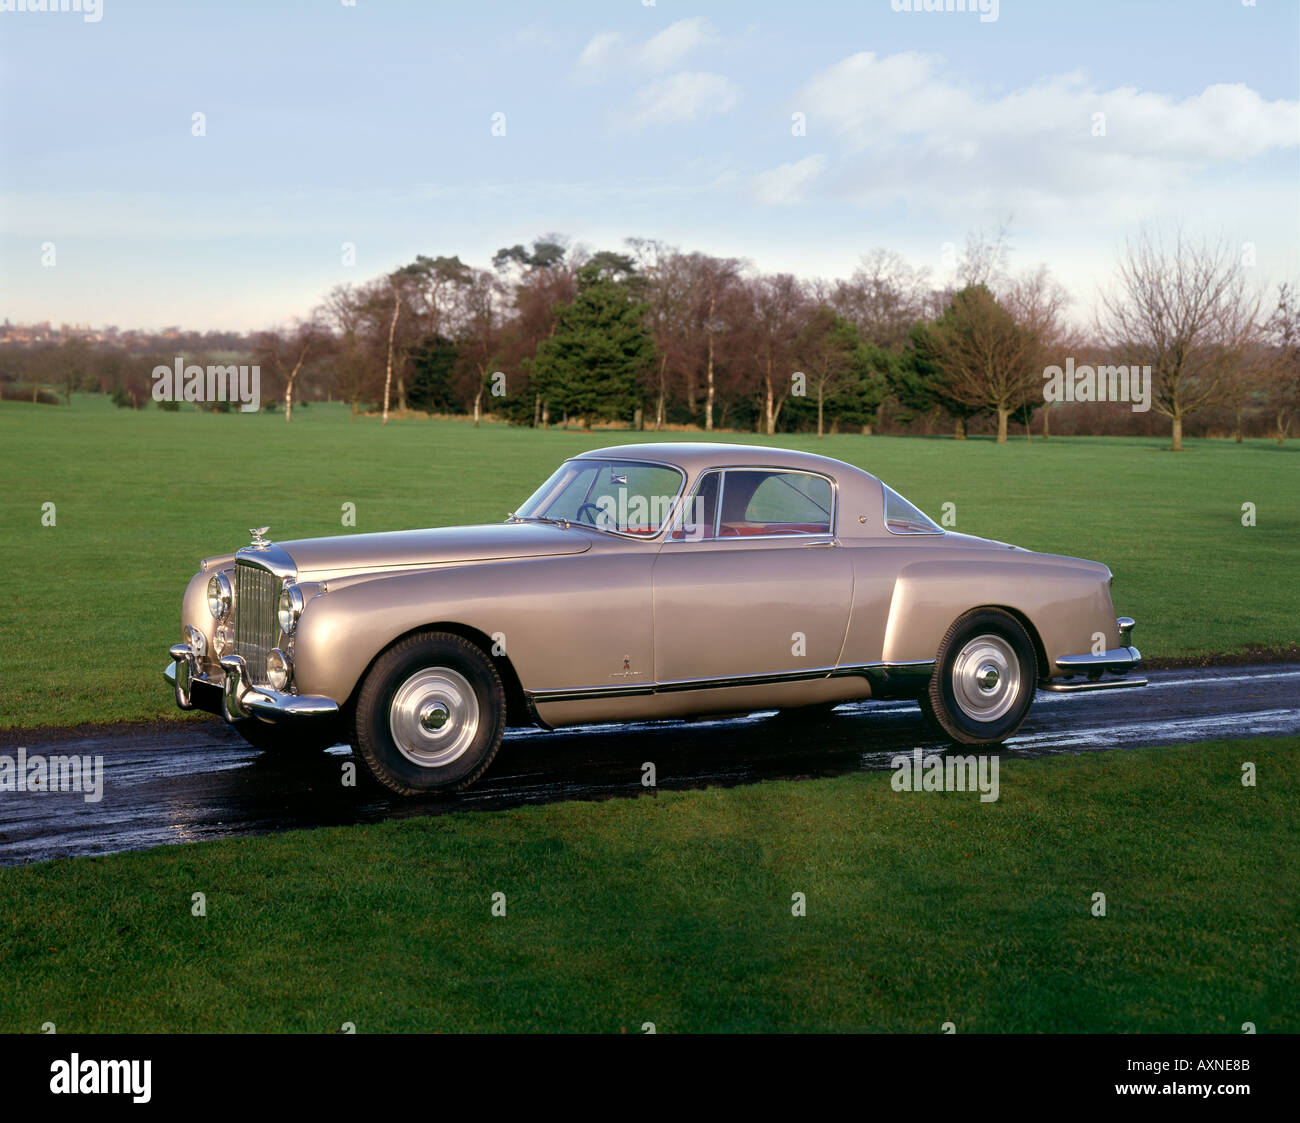 Bentley Sport Coupe Price: 1954 Bentley R Type Continental 2 Door Sports Coupe 5 0